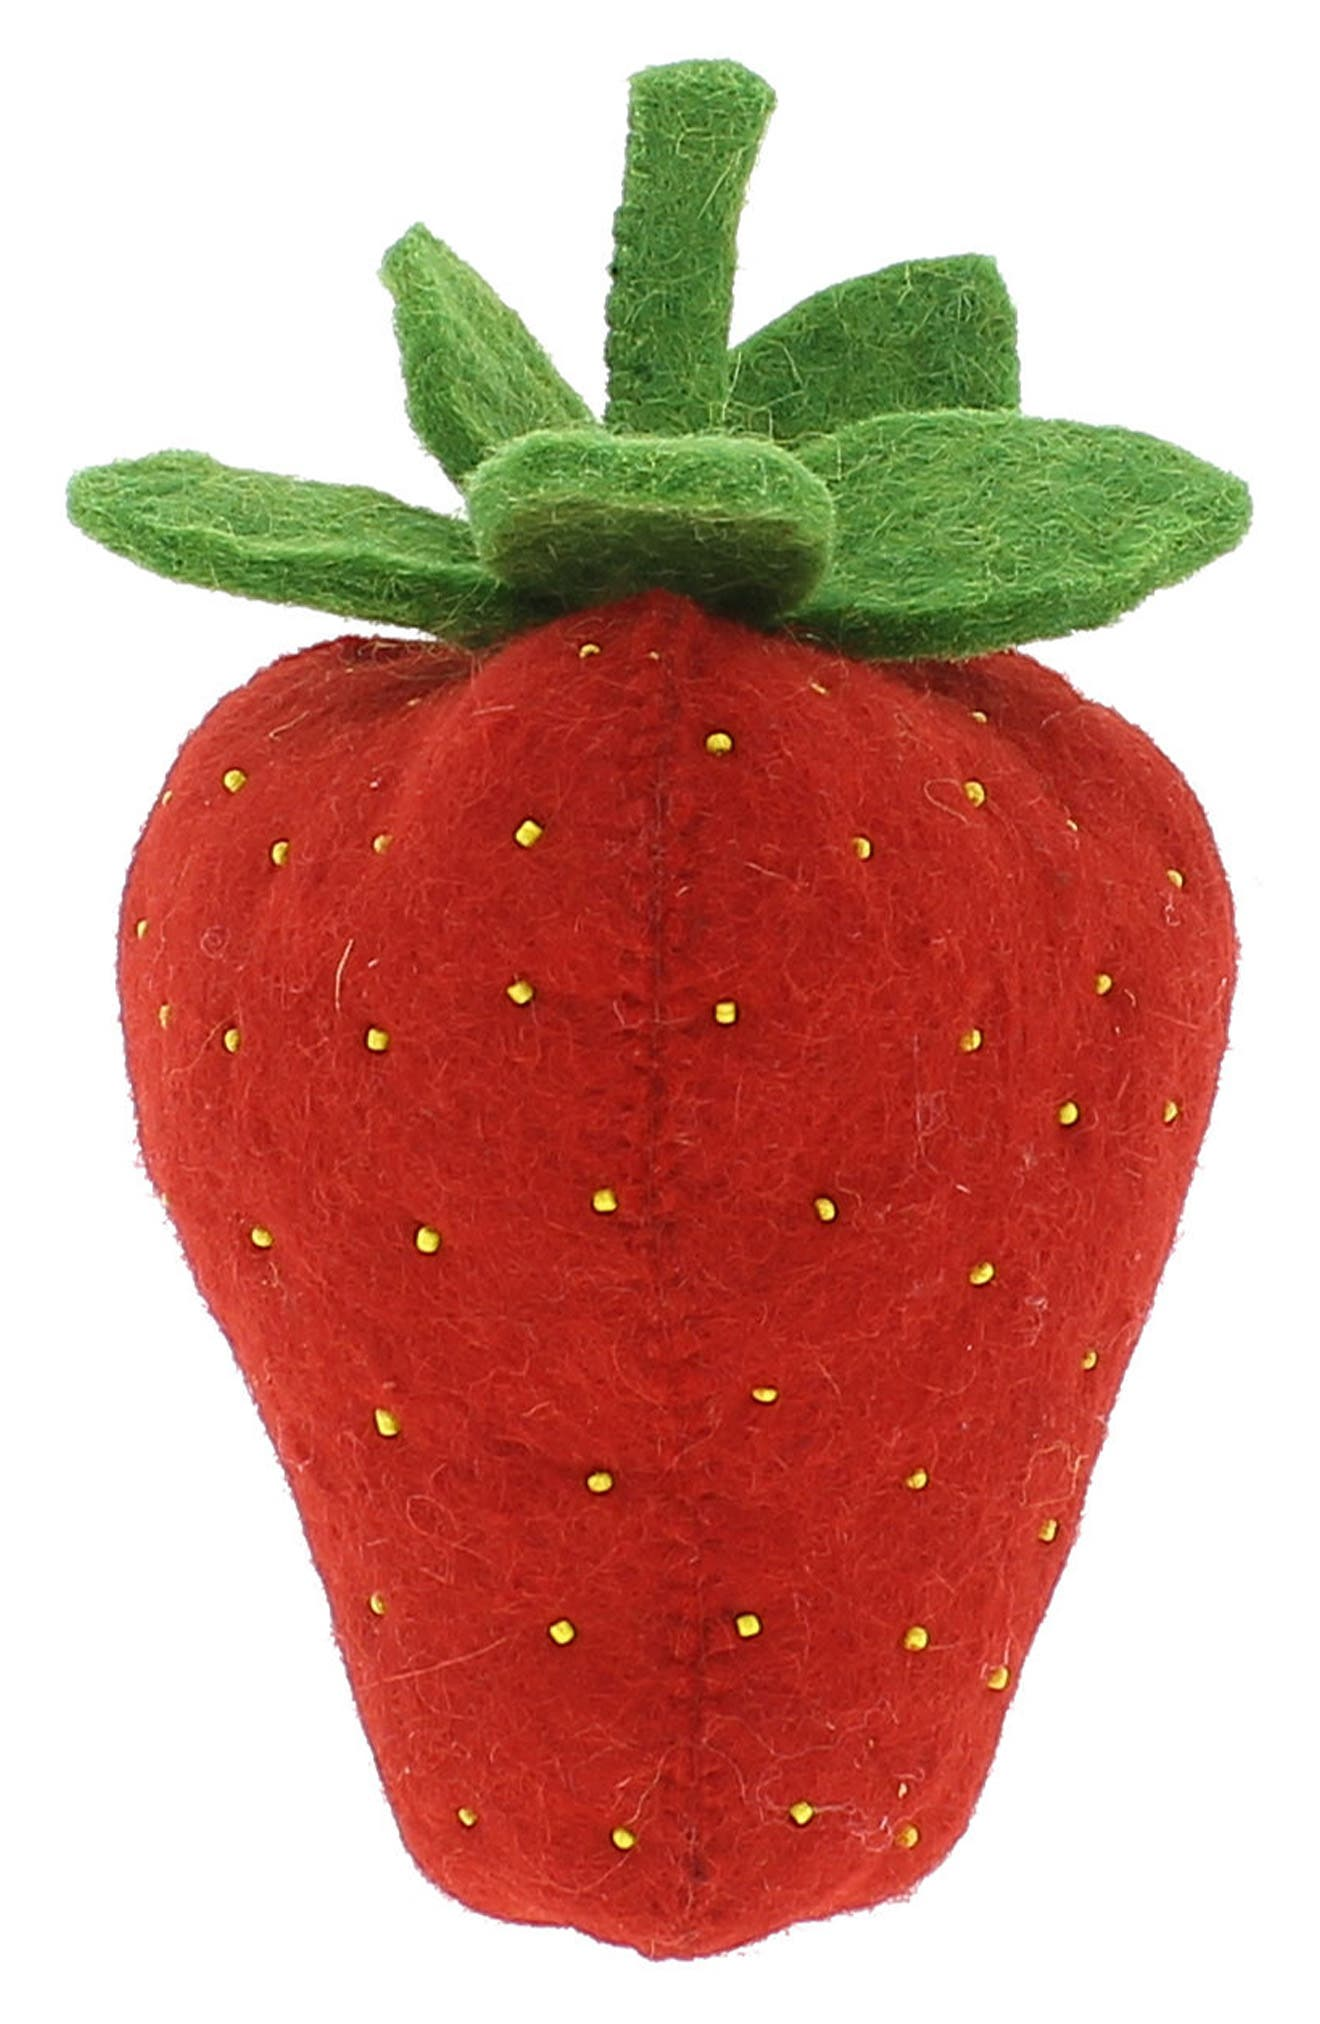 Alternate Image 1 Selected - Fiona Walker Strawberry Wall Decoration